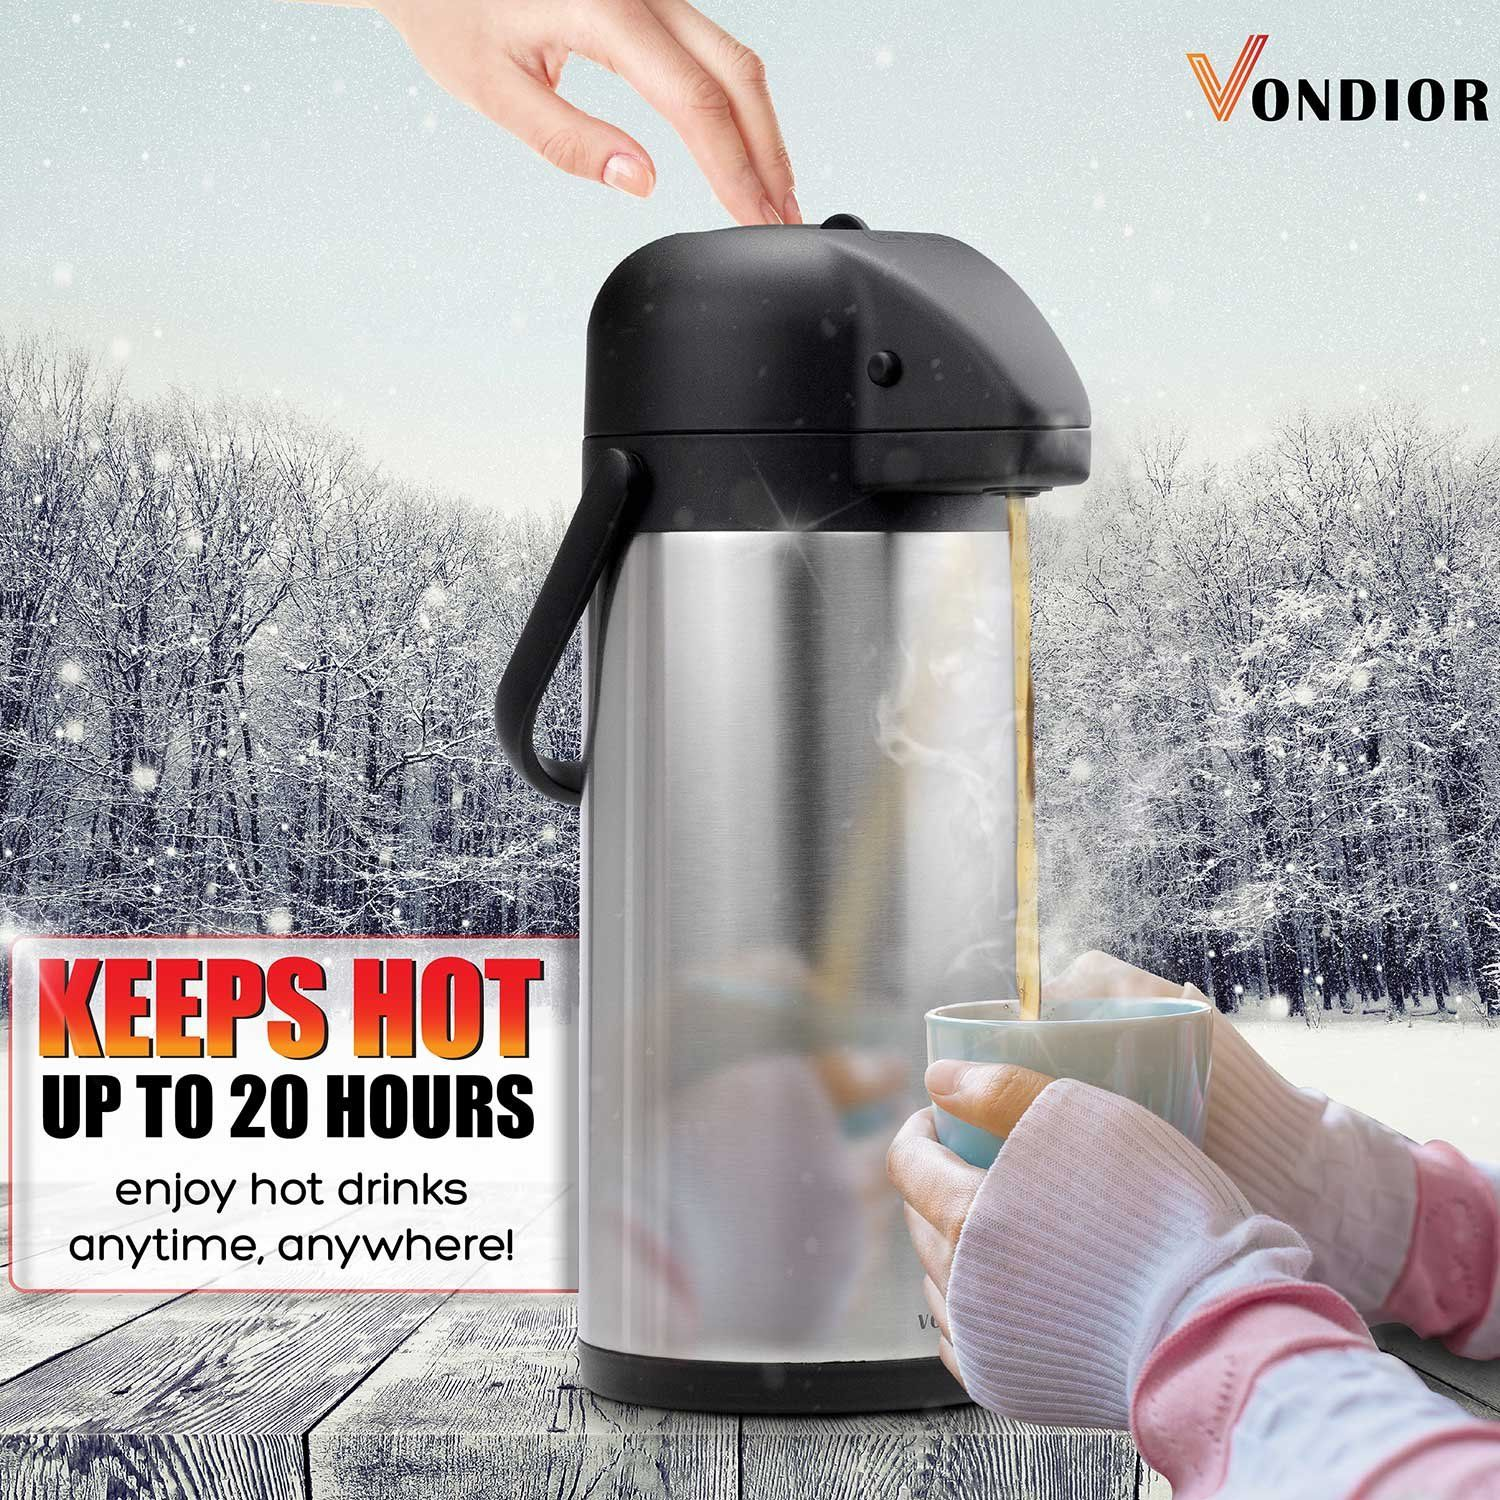 ONE DAY SALE! Coffee Carafe Thermos Thermal Beverage